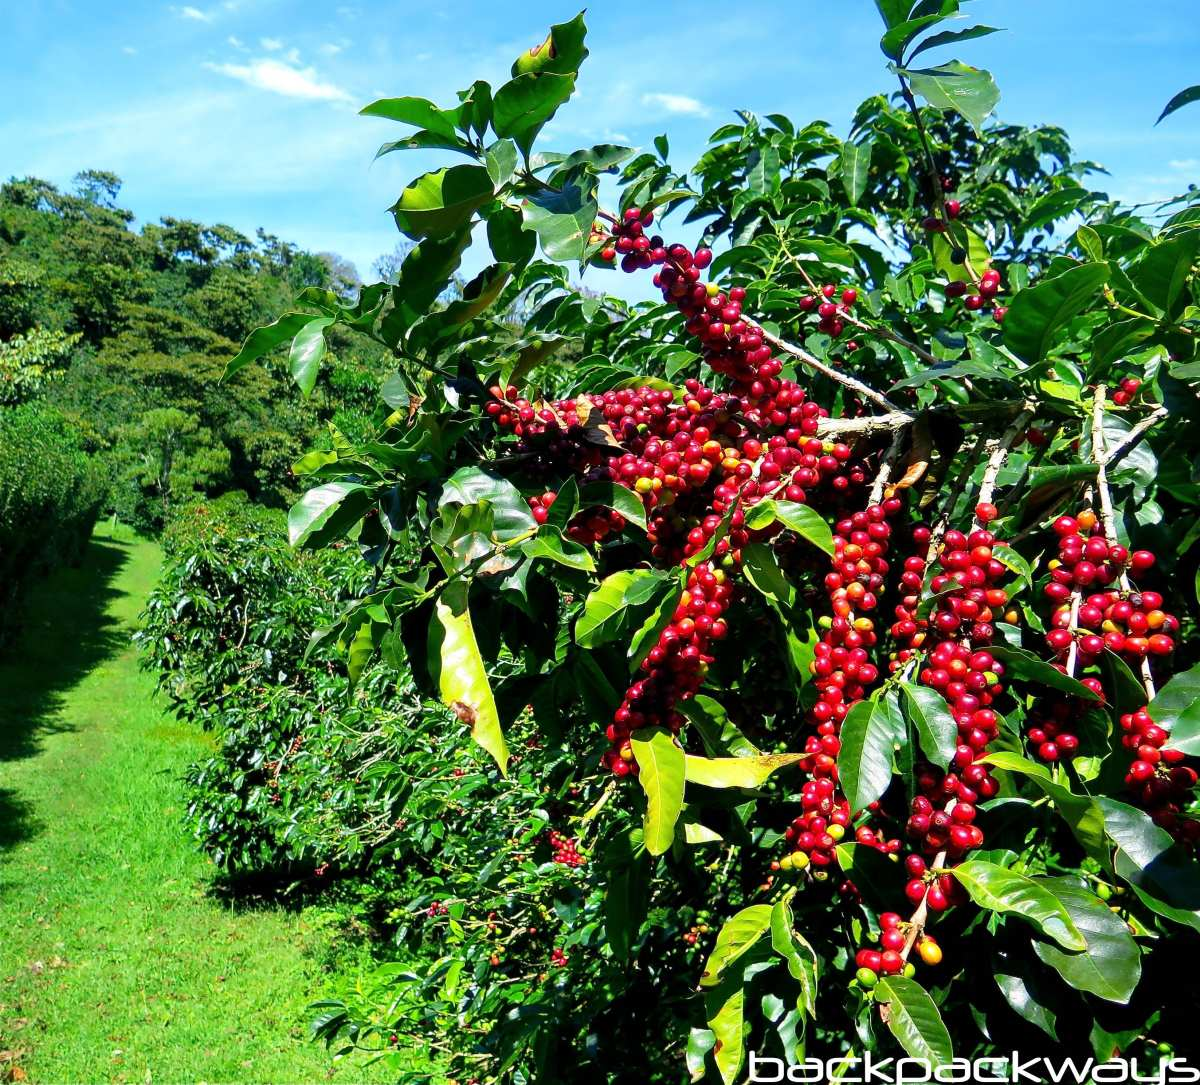 Colombia Coffee Salento Backpackways